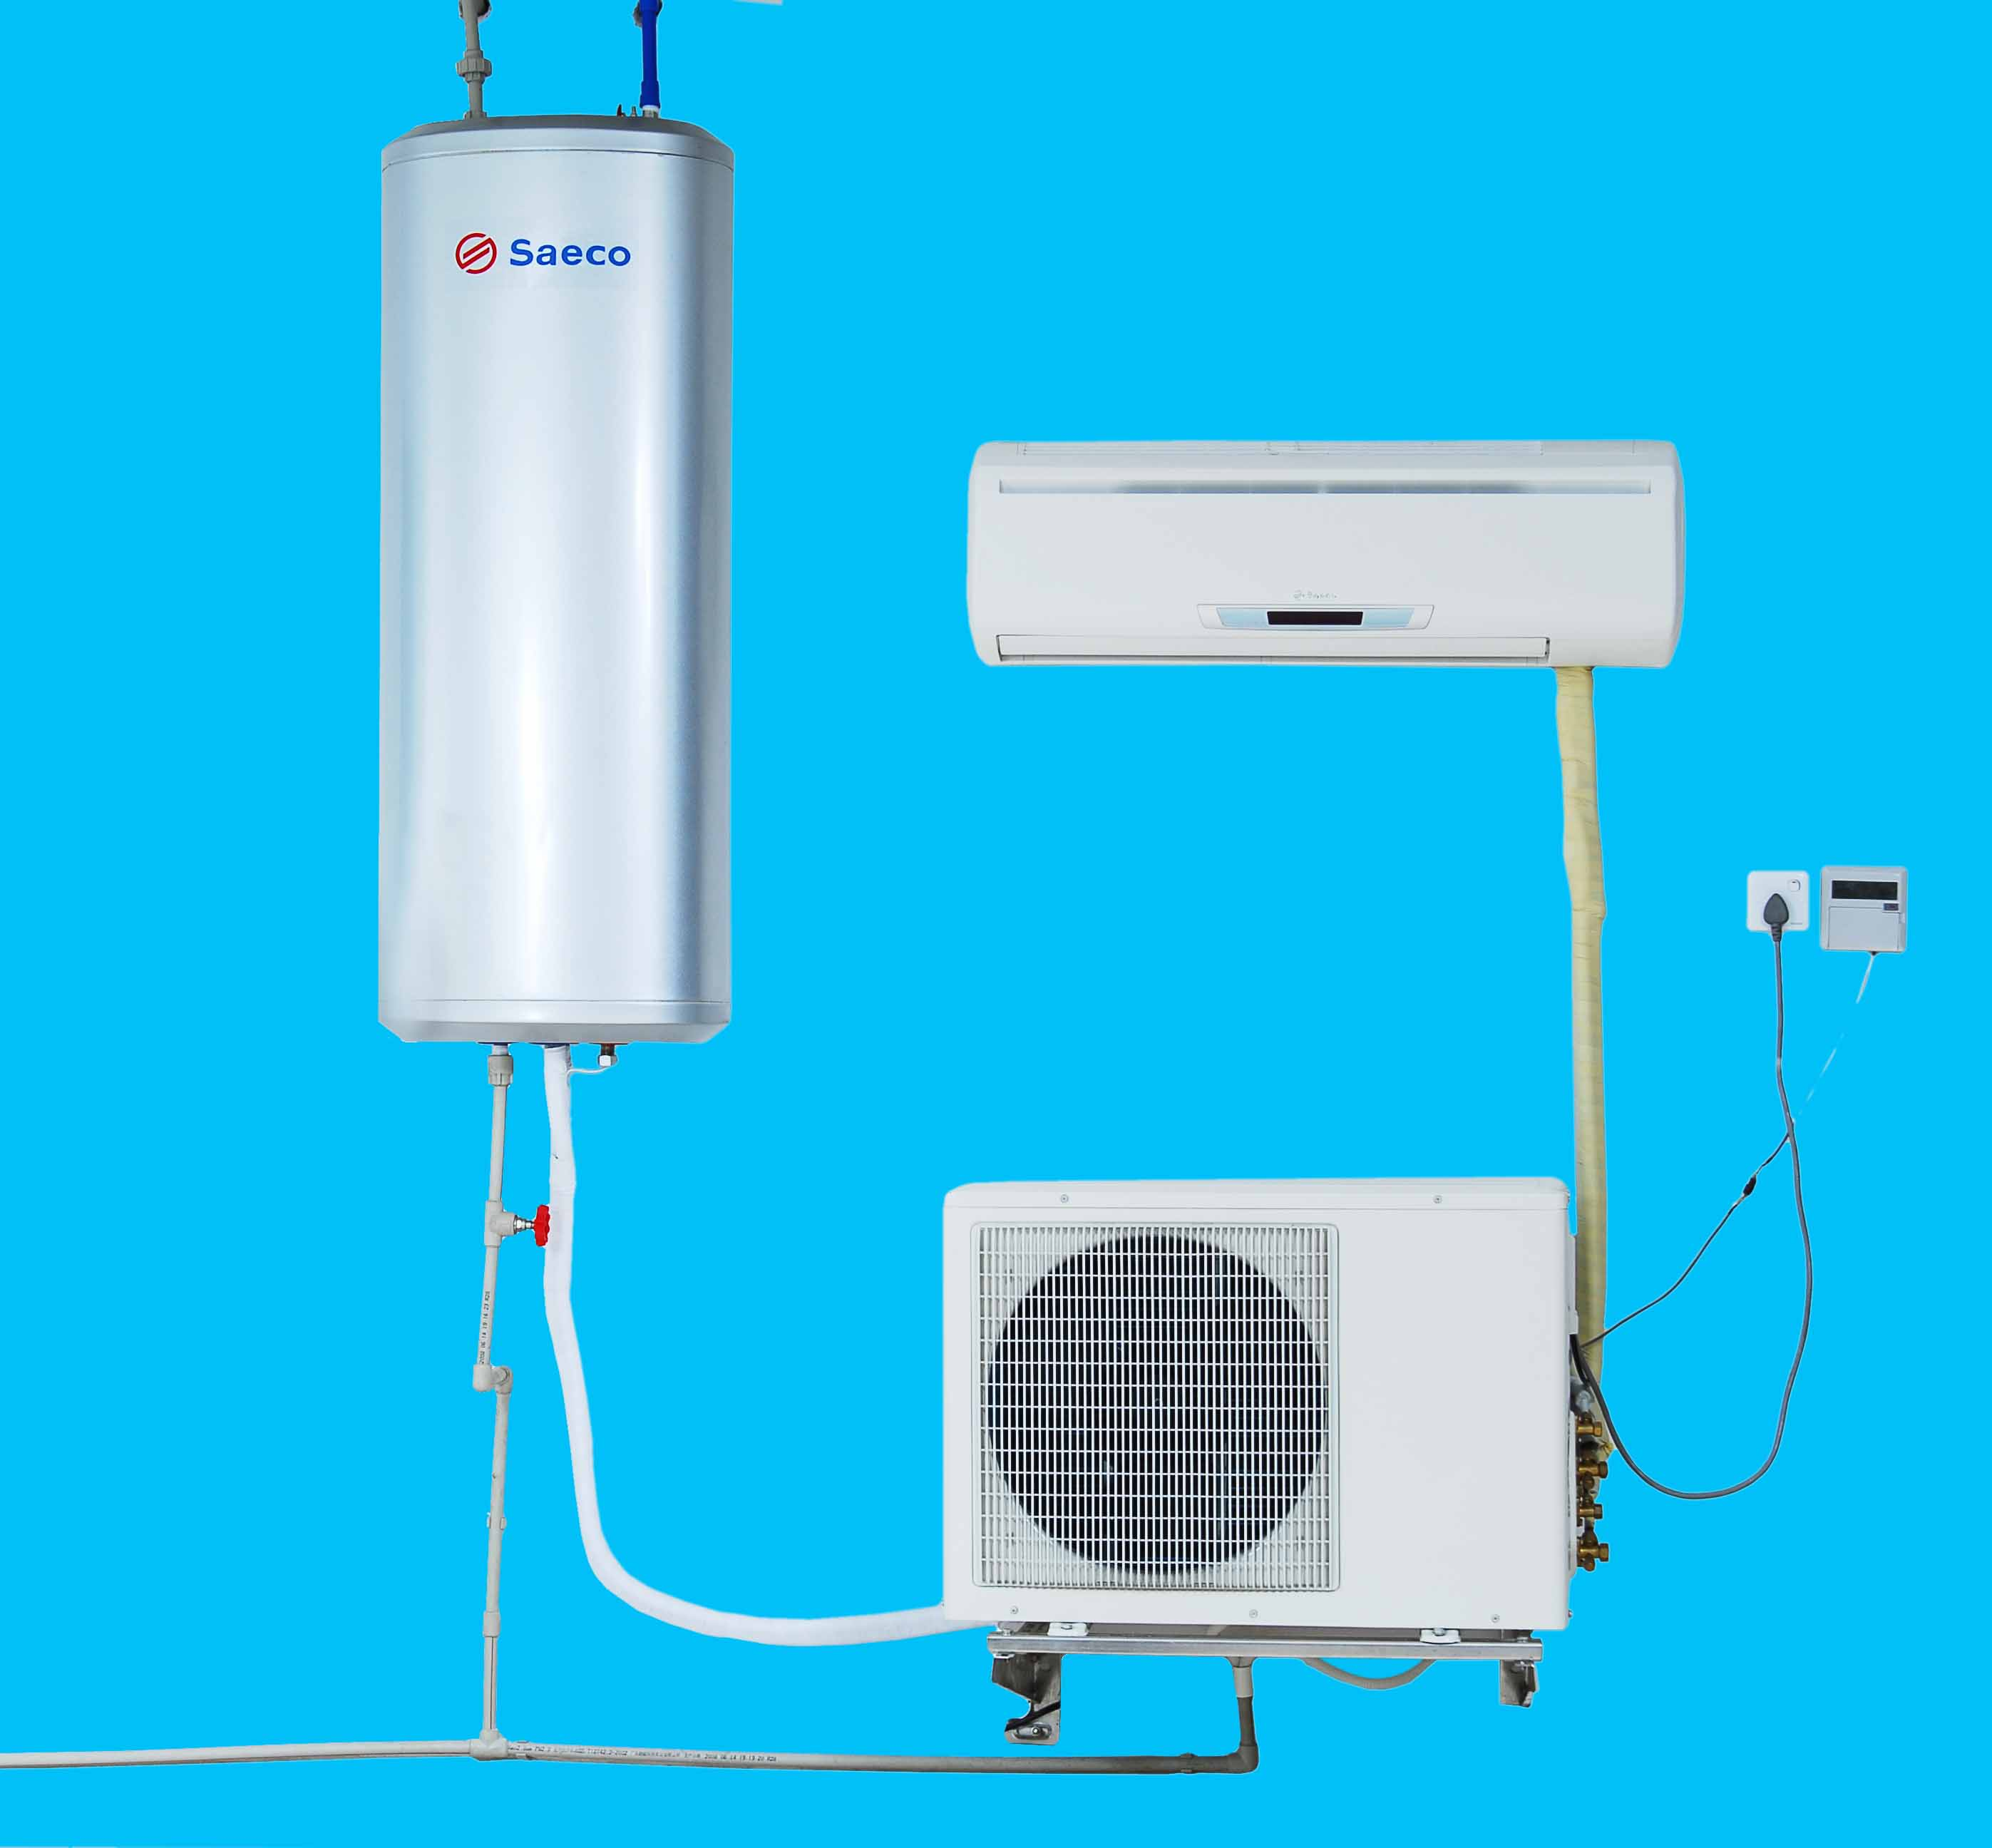 hybrid water heater with air conditioner function - Air Conditioner And Heater